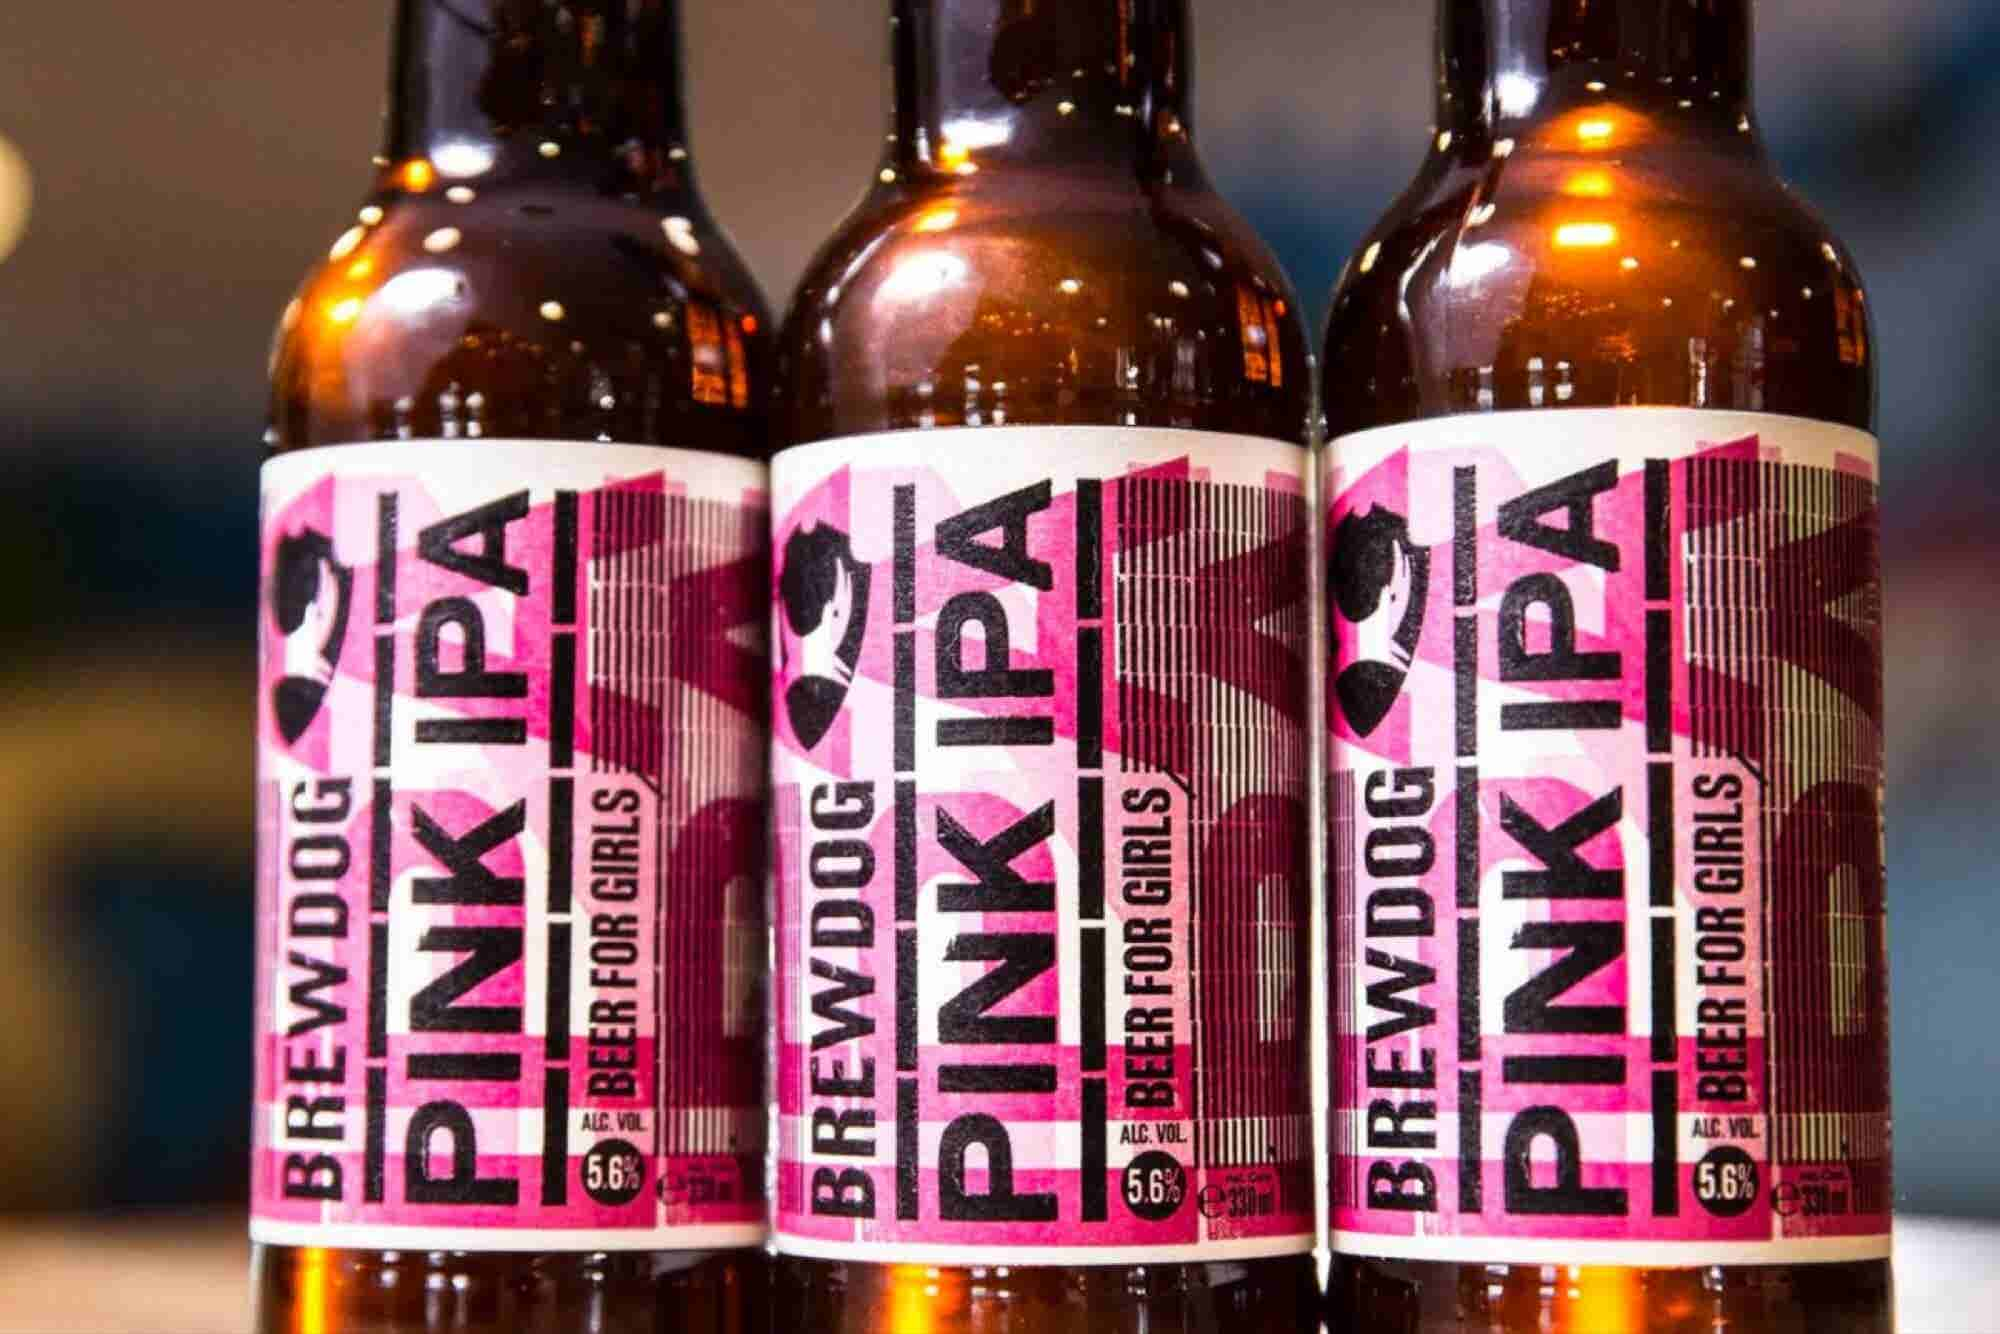 A Cult Craft Brewer Says Its 'Beer For Girls' Is Satire -- But Women Are Slamming the Company for the 'Lazy Stunt'